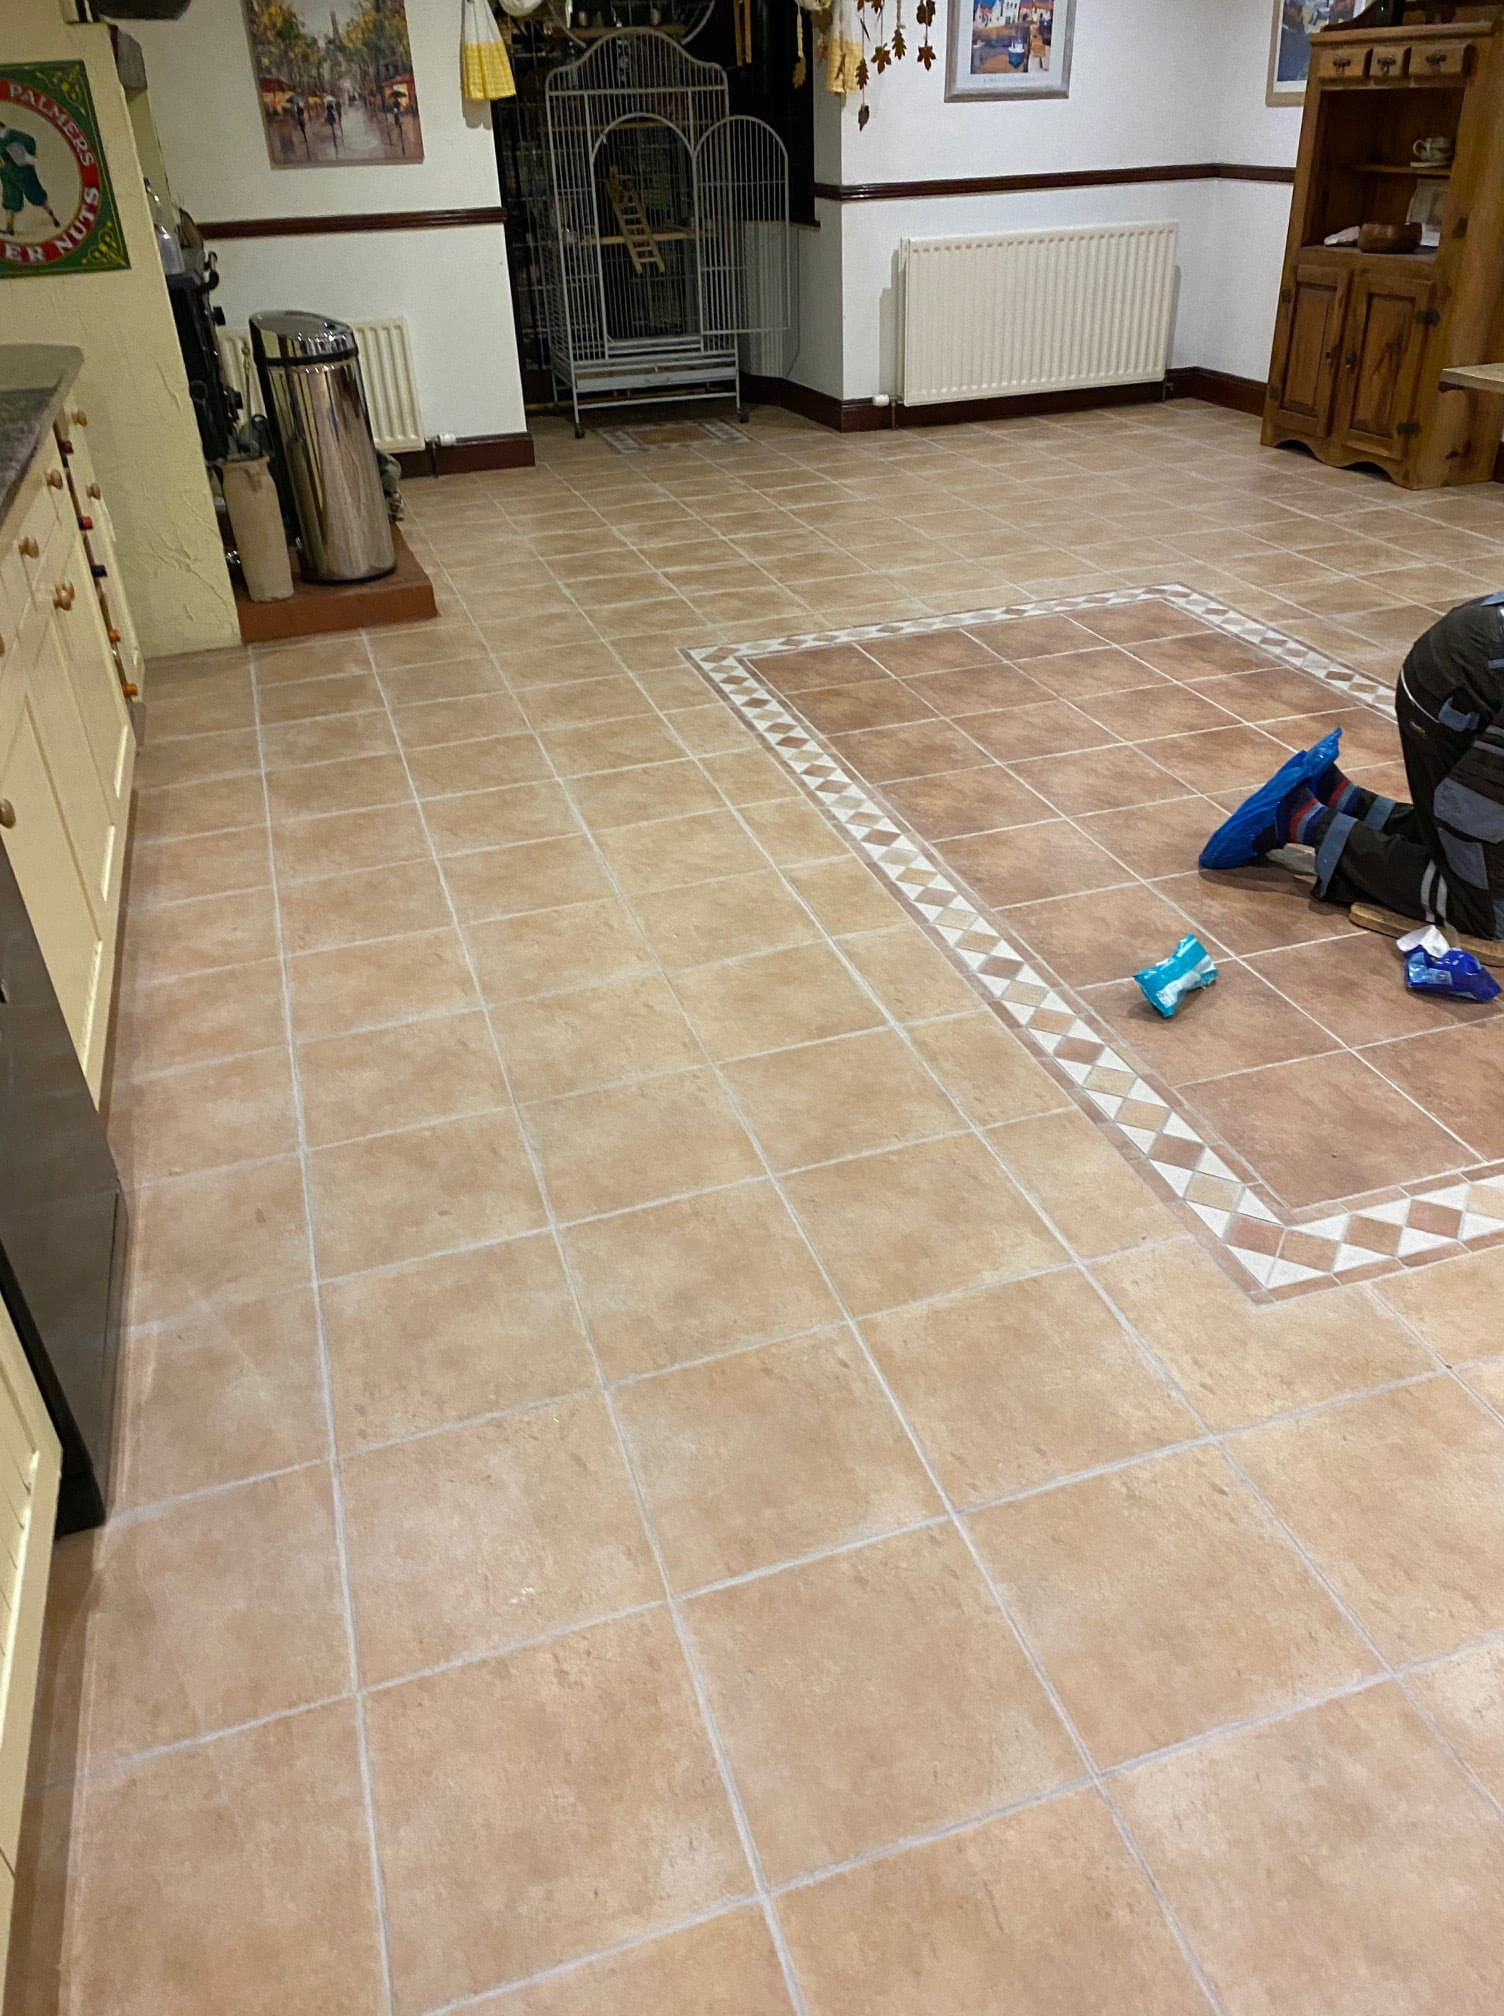 Ceramic Tiled Kitchen Floor After Grout Colouring Keswick